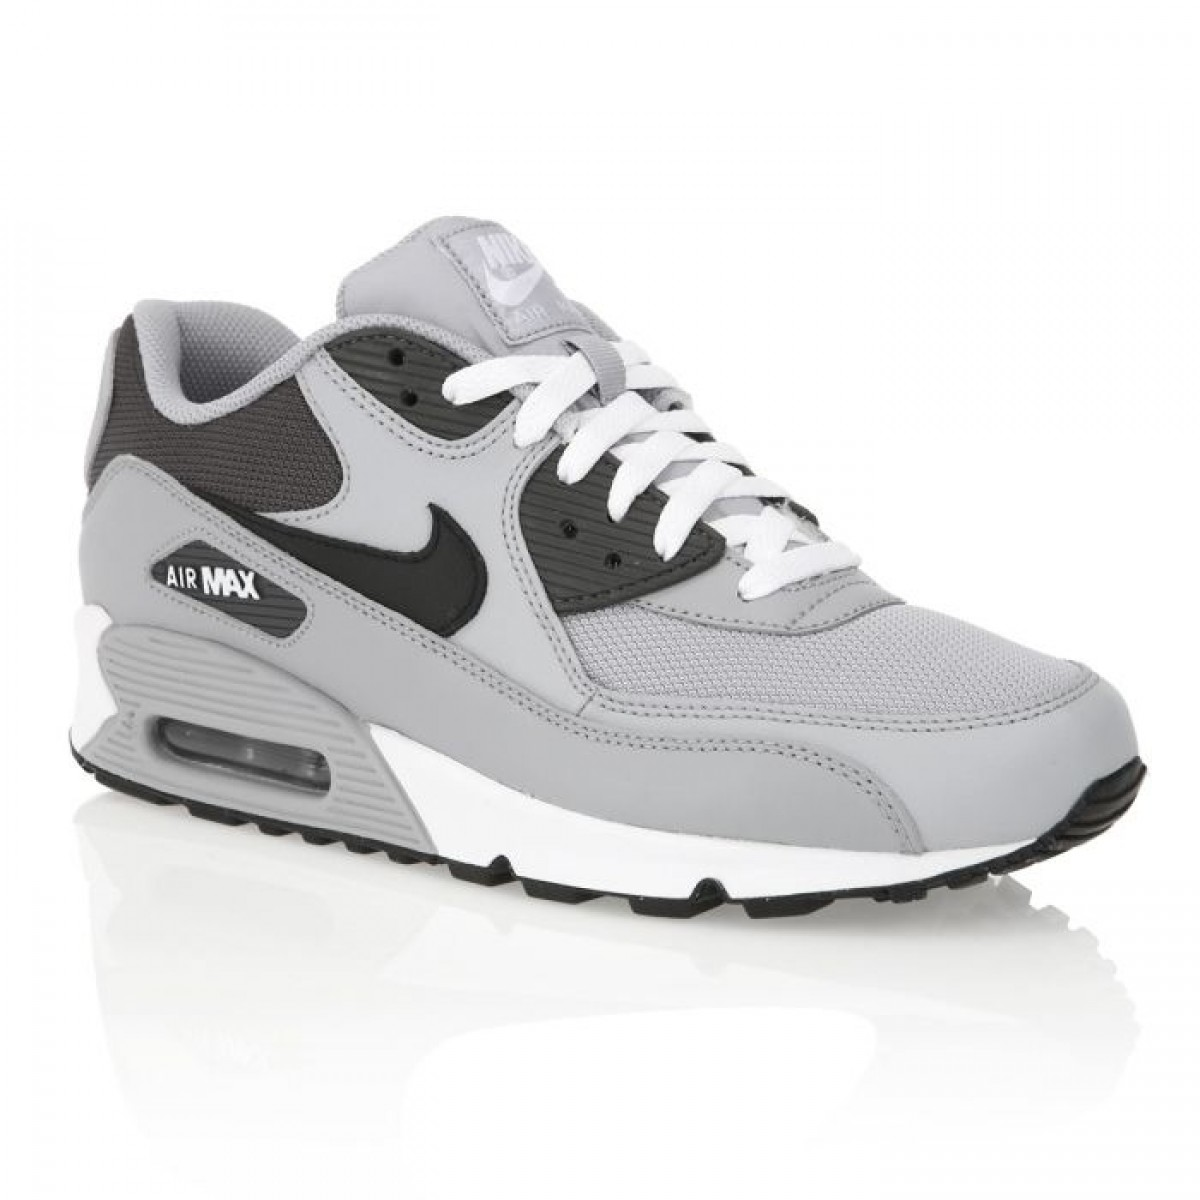 shop best sellers large discount authentic quality Achat / Vente produits Nike Air Max 90 Femme Grise,Nike Air Max 90 ...